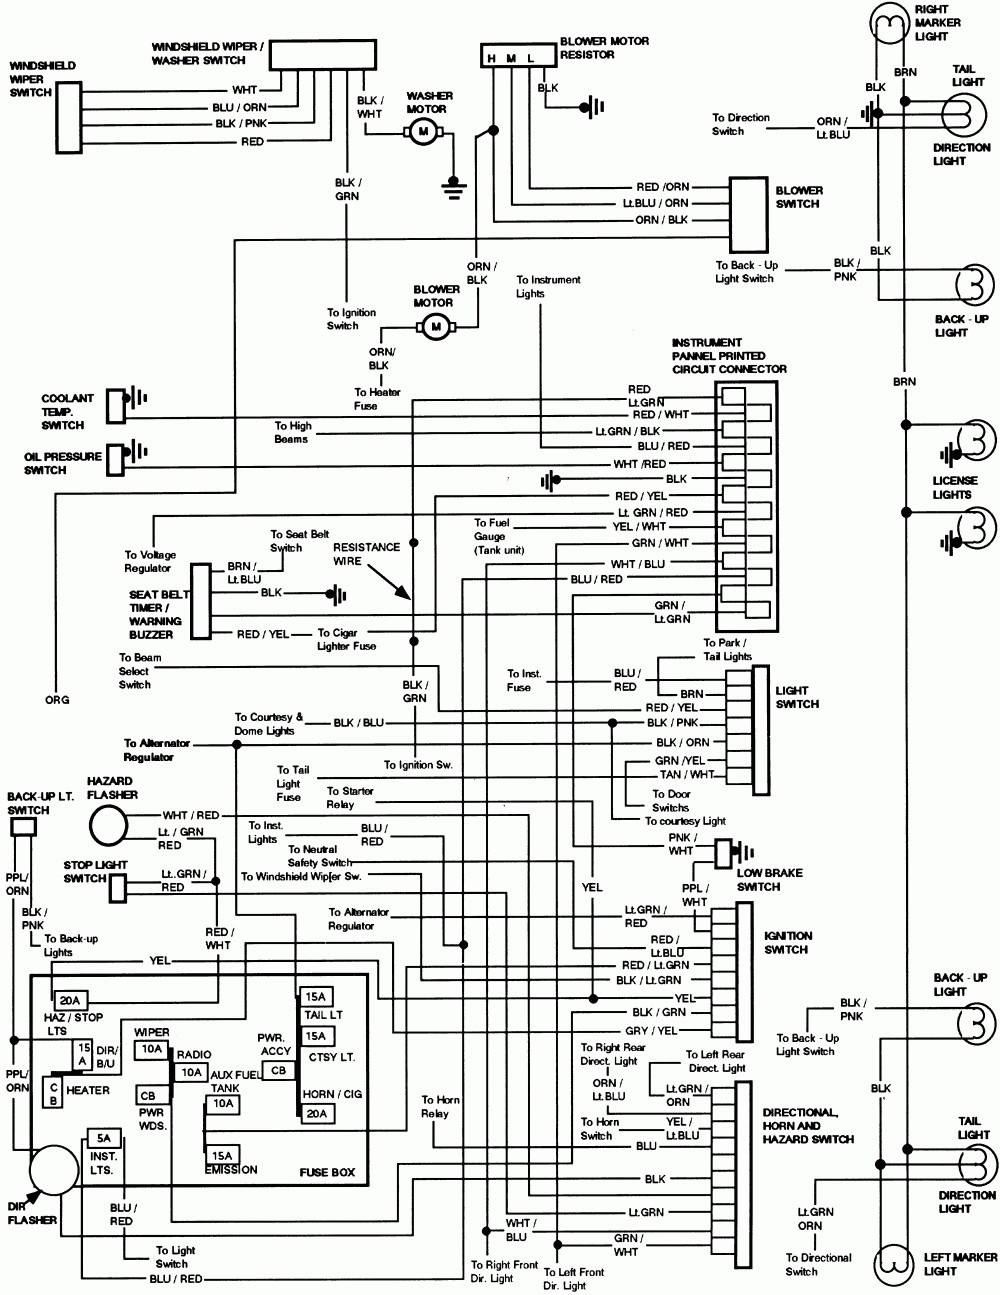 medium resolution of ford f series wiring diagrams wiring diagram insider 2011 ford f 150 wiring diagrams